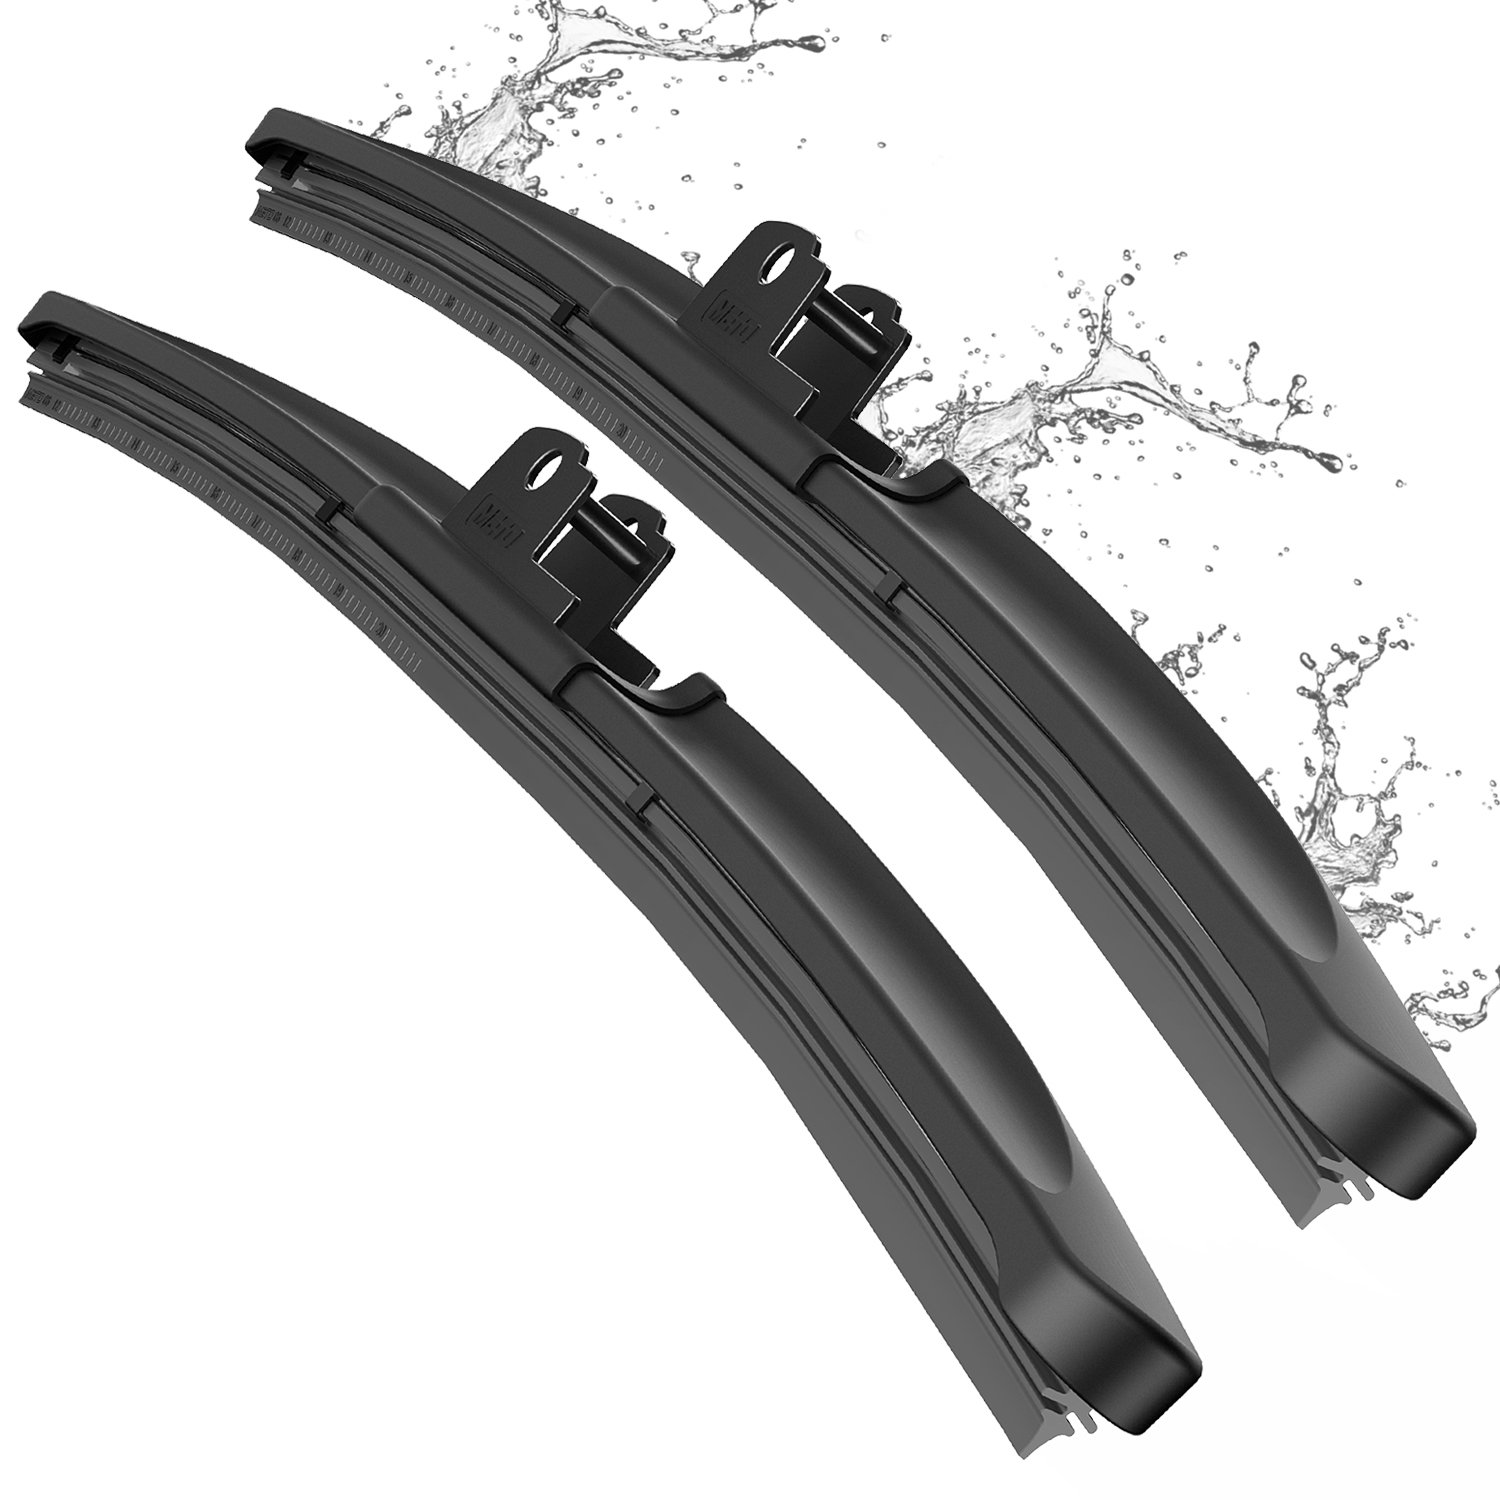 Wiper Blade, METO T6 18'' + 18'' Windshield Wiper : Water Repellency Polymer Materials Silence Blade, Up to 60% Longer Life (Set of 2) by METO